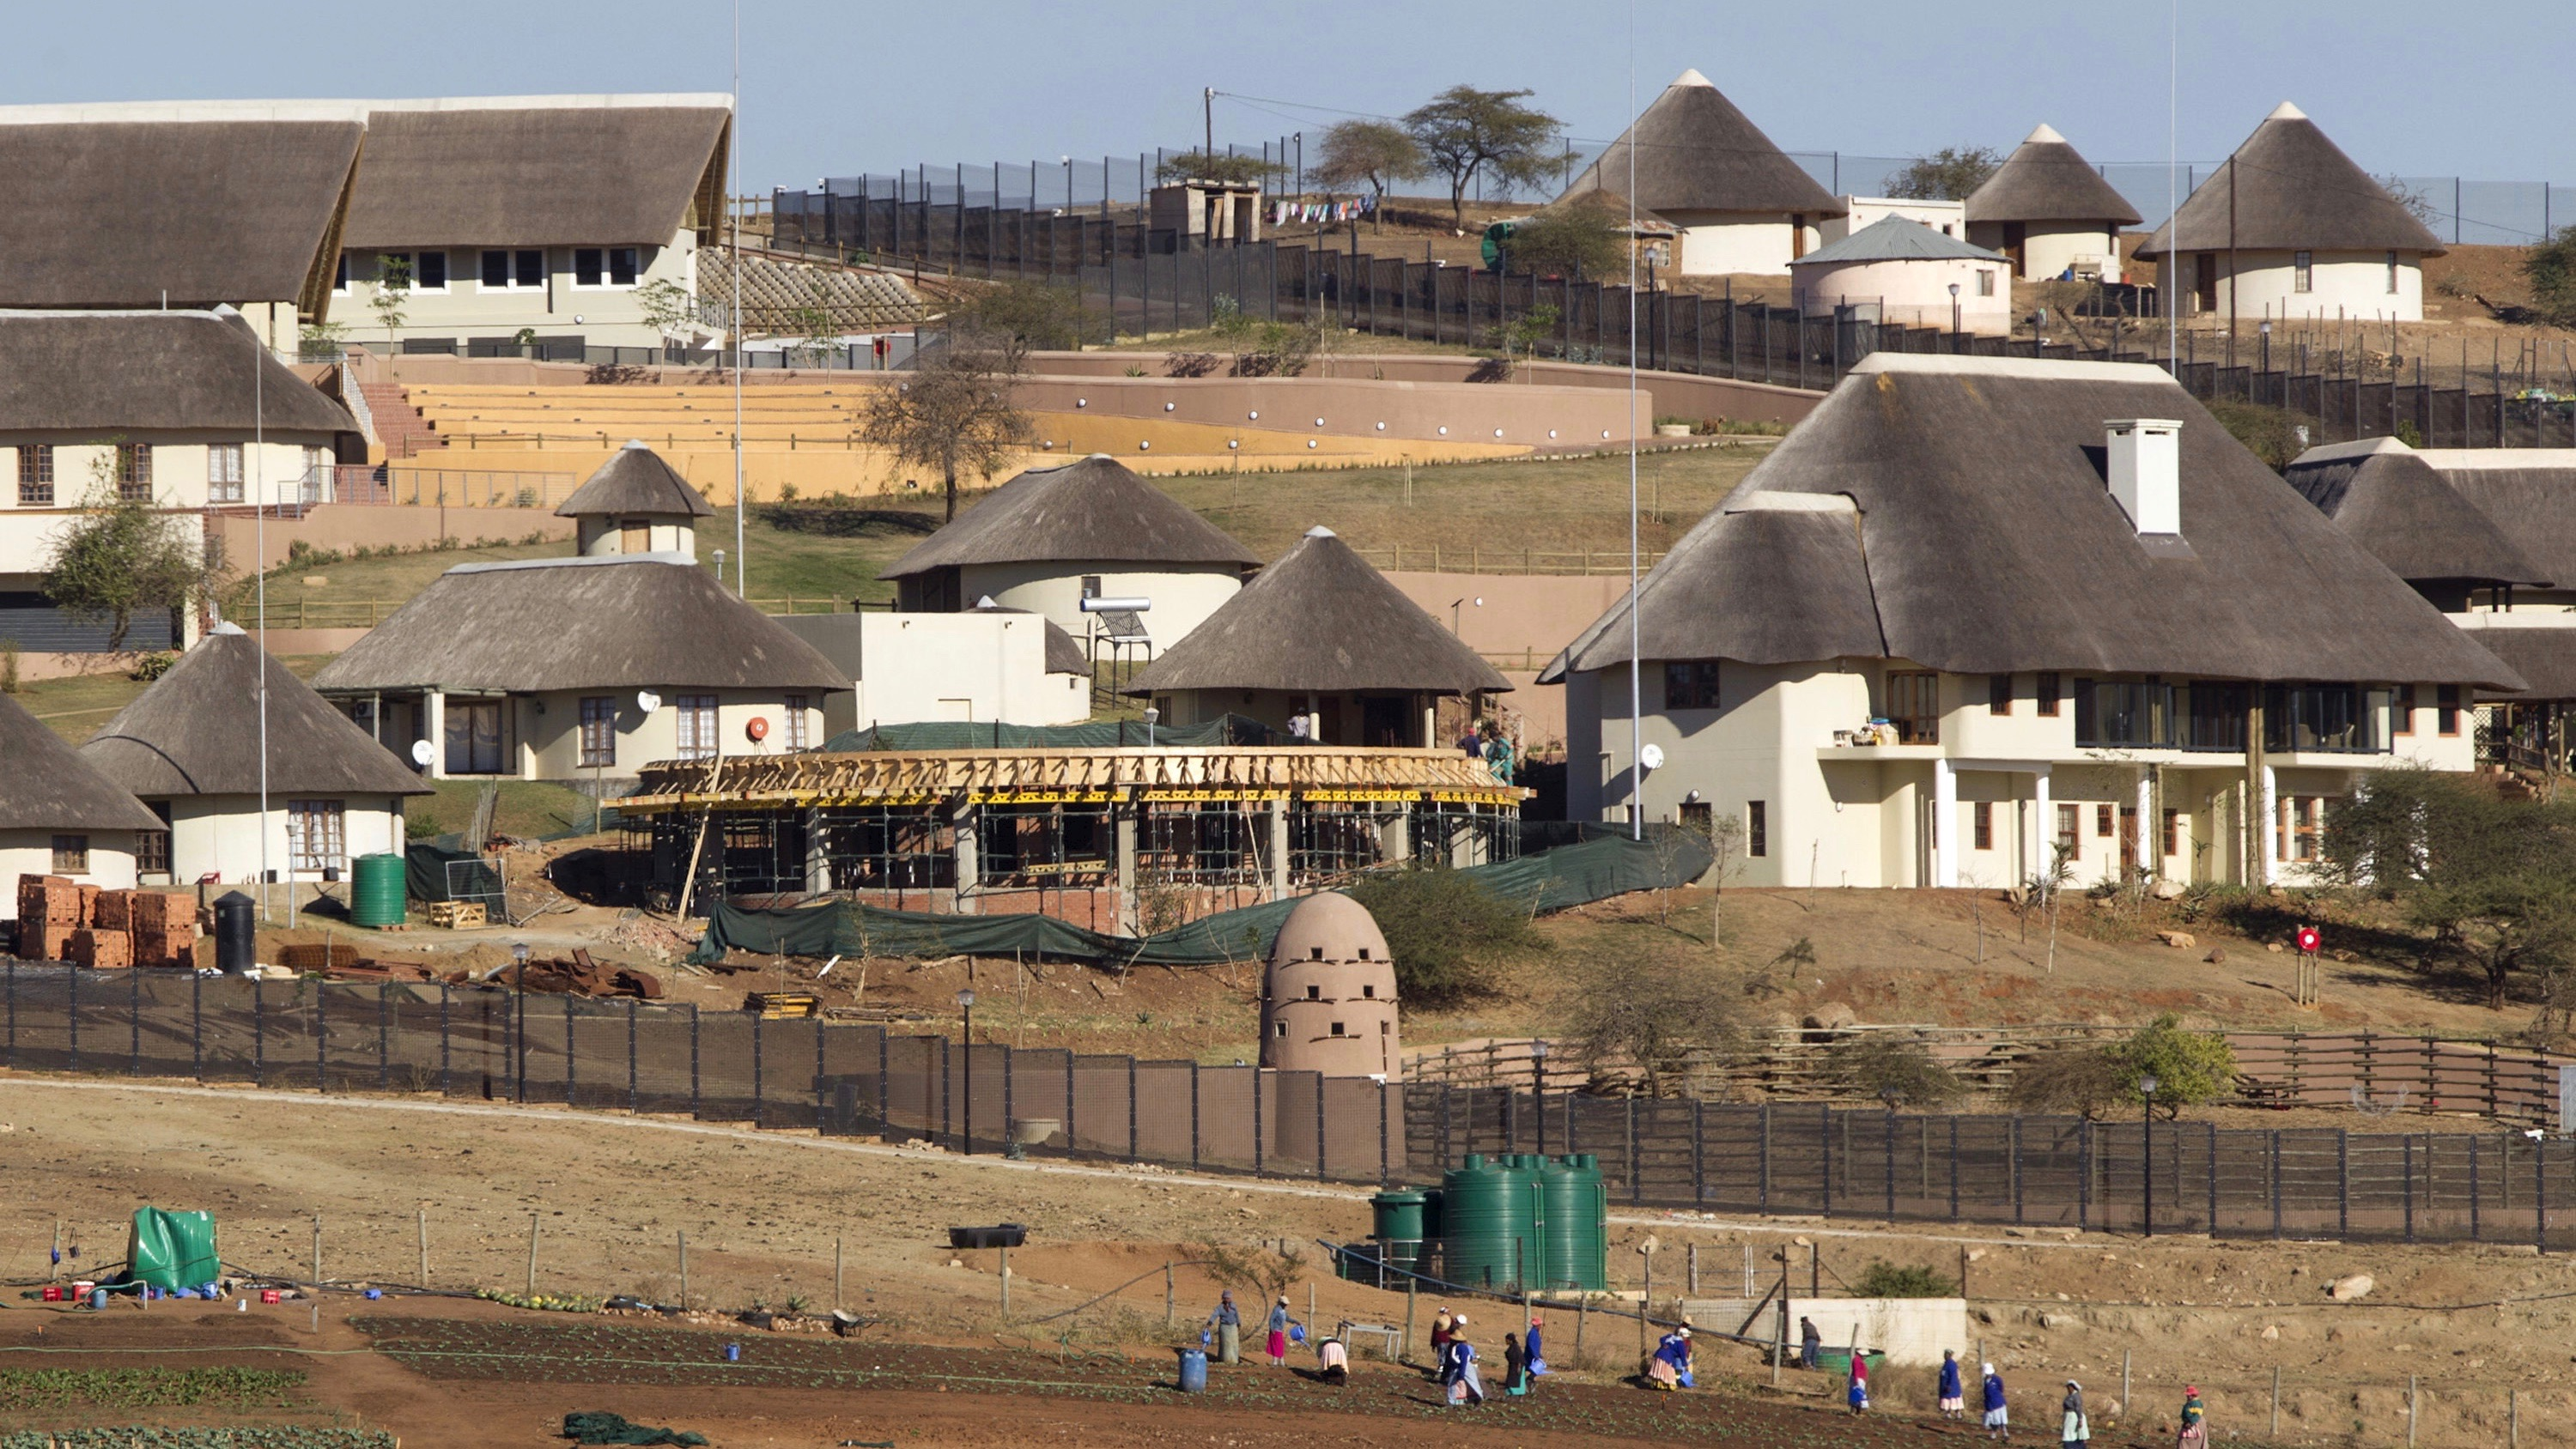 A general view of the Nkandla home  of South Africa's President Jacob Zuma in Nkandla is seen in this file picture taken August 2, 2012. REUTERS/Rogan Ward/Files       TPX IMAGES OF THE DAY      - RTSCXVW